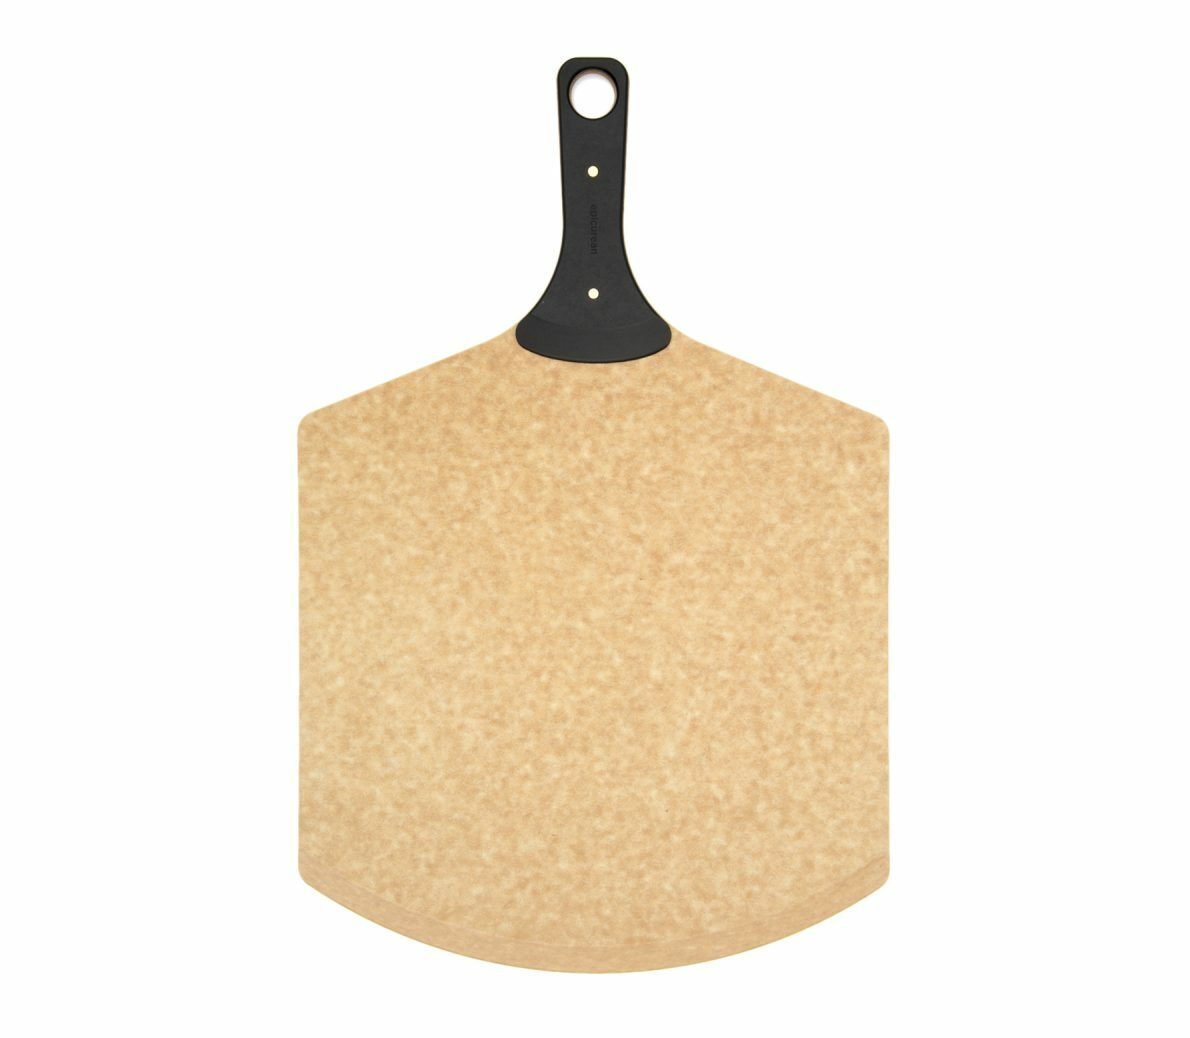 Epicurean Riveted Pizza Peel - Natural